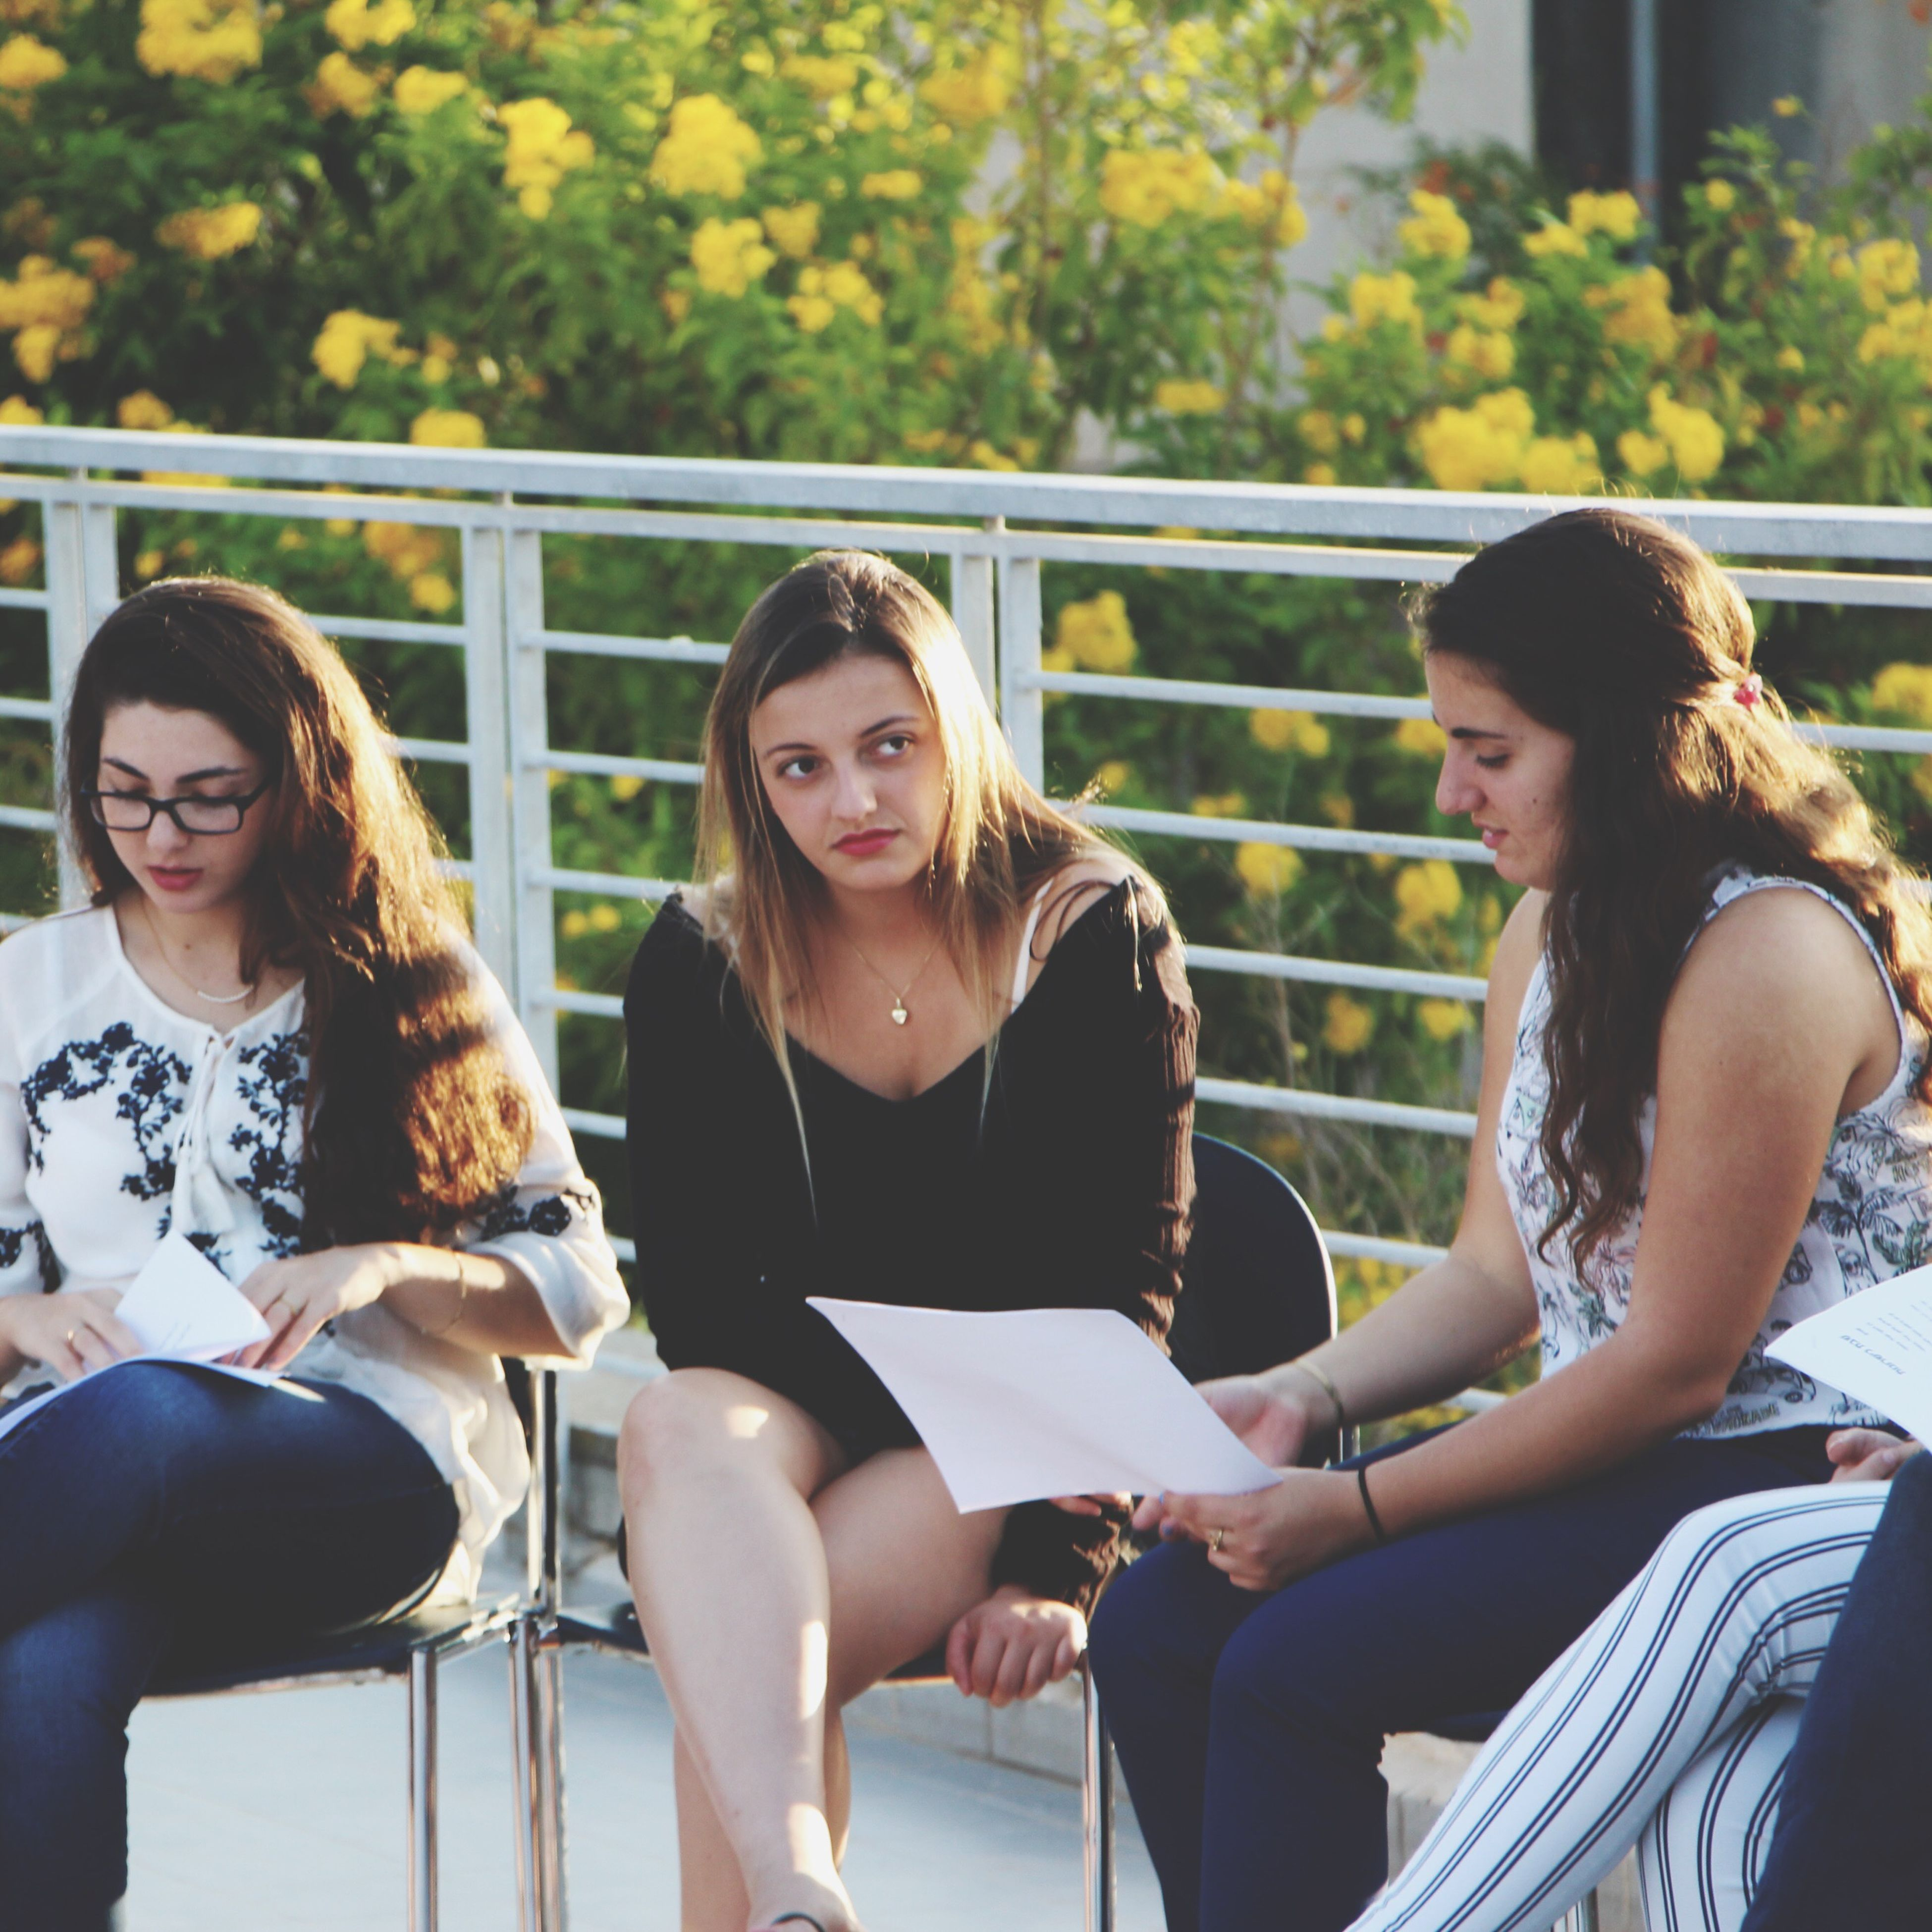 sitting, real people, casual clothing, togetherness, young women, young adult, day, university student, lifestyles, friendship, outdoors